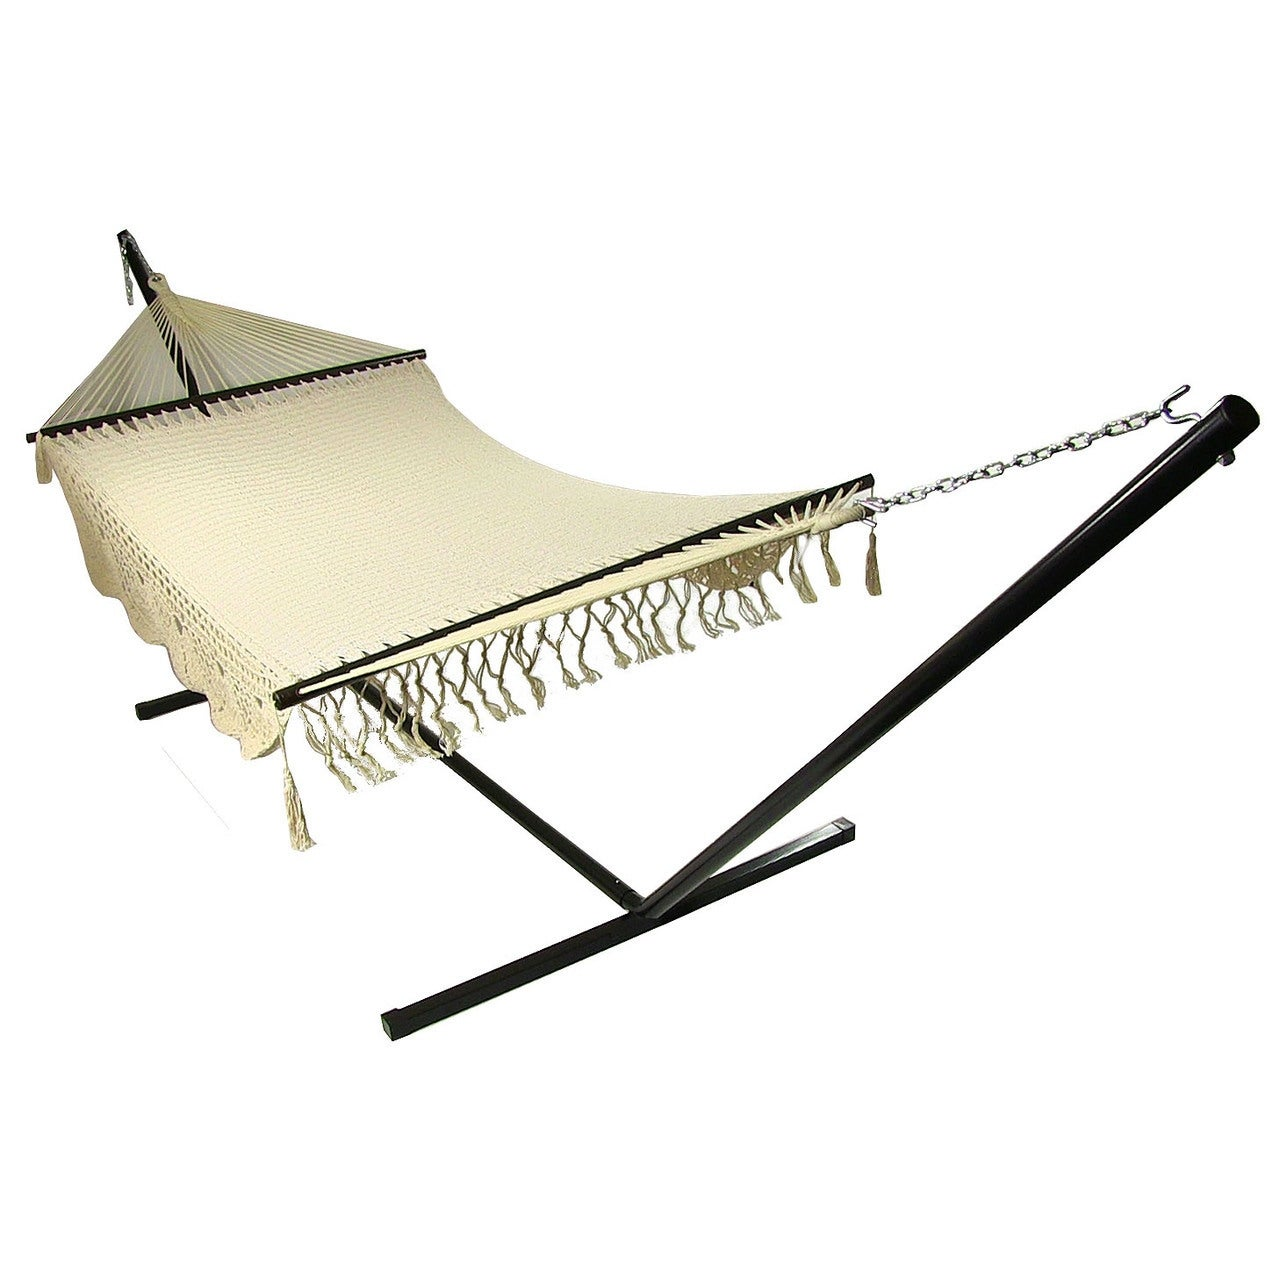 Sunnydaze American DeLuxe Style Mayan Hammock or Hammock w/ Stand Option - Antique White - Thumbnail 7